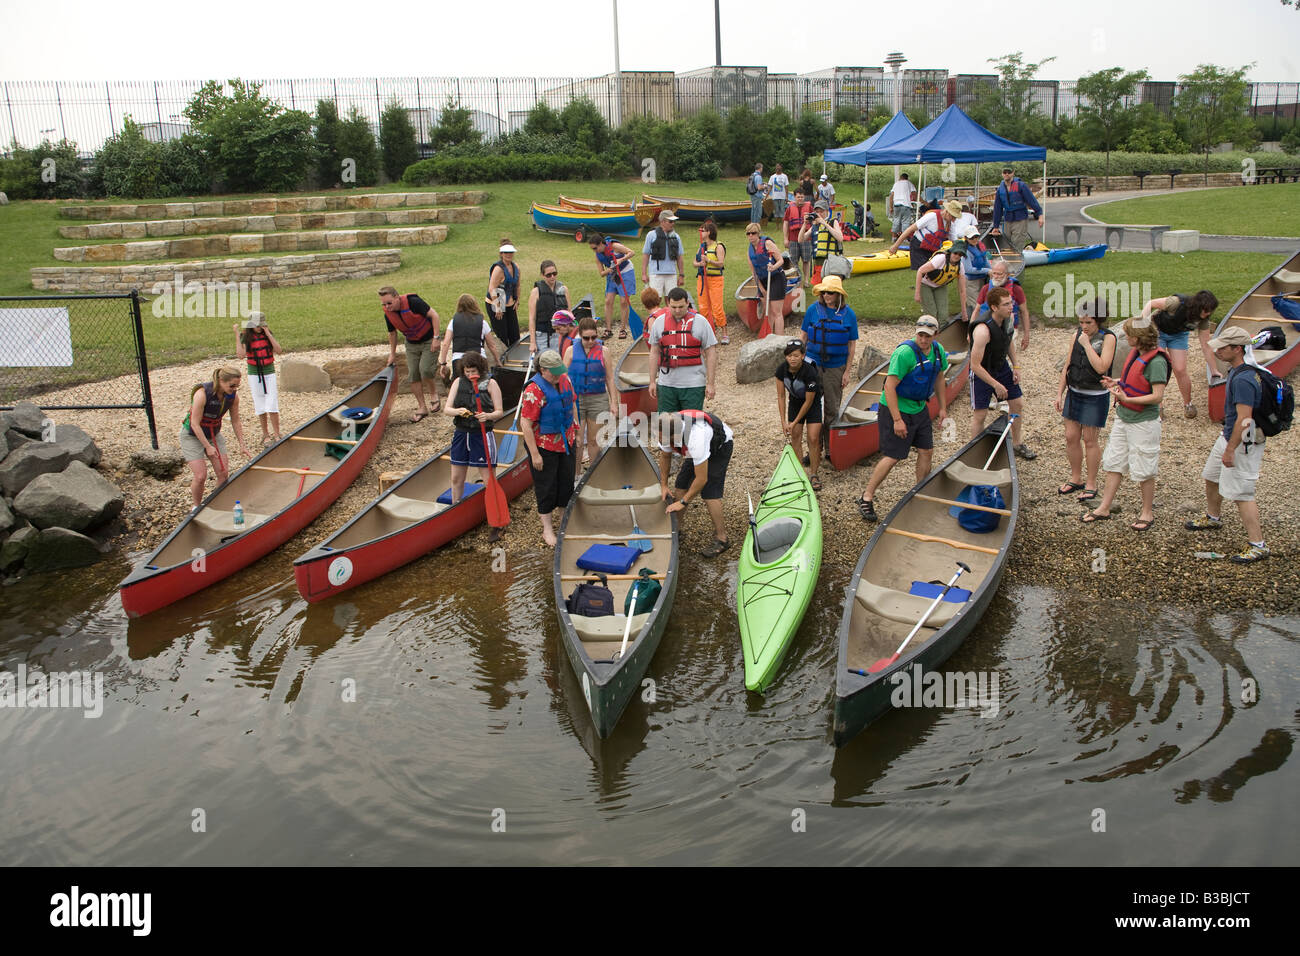 City dwellers prepare to take a canoe trip up the Bronx River in the Bronx, New York City. - Stock Image